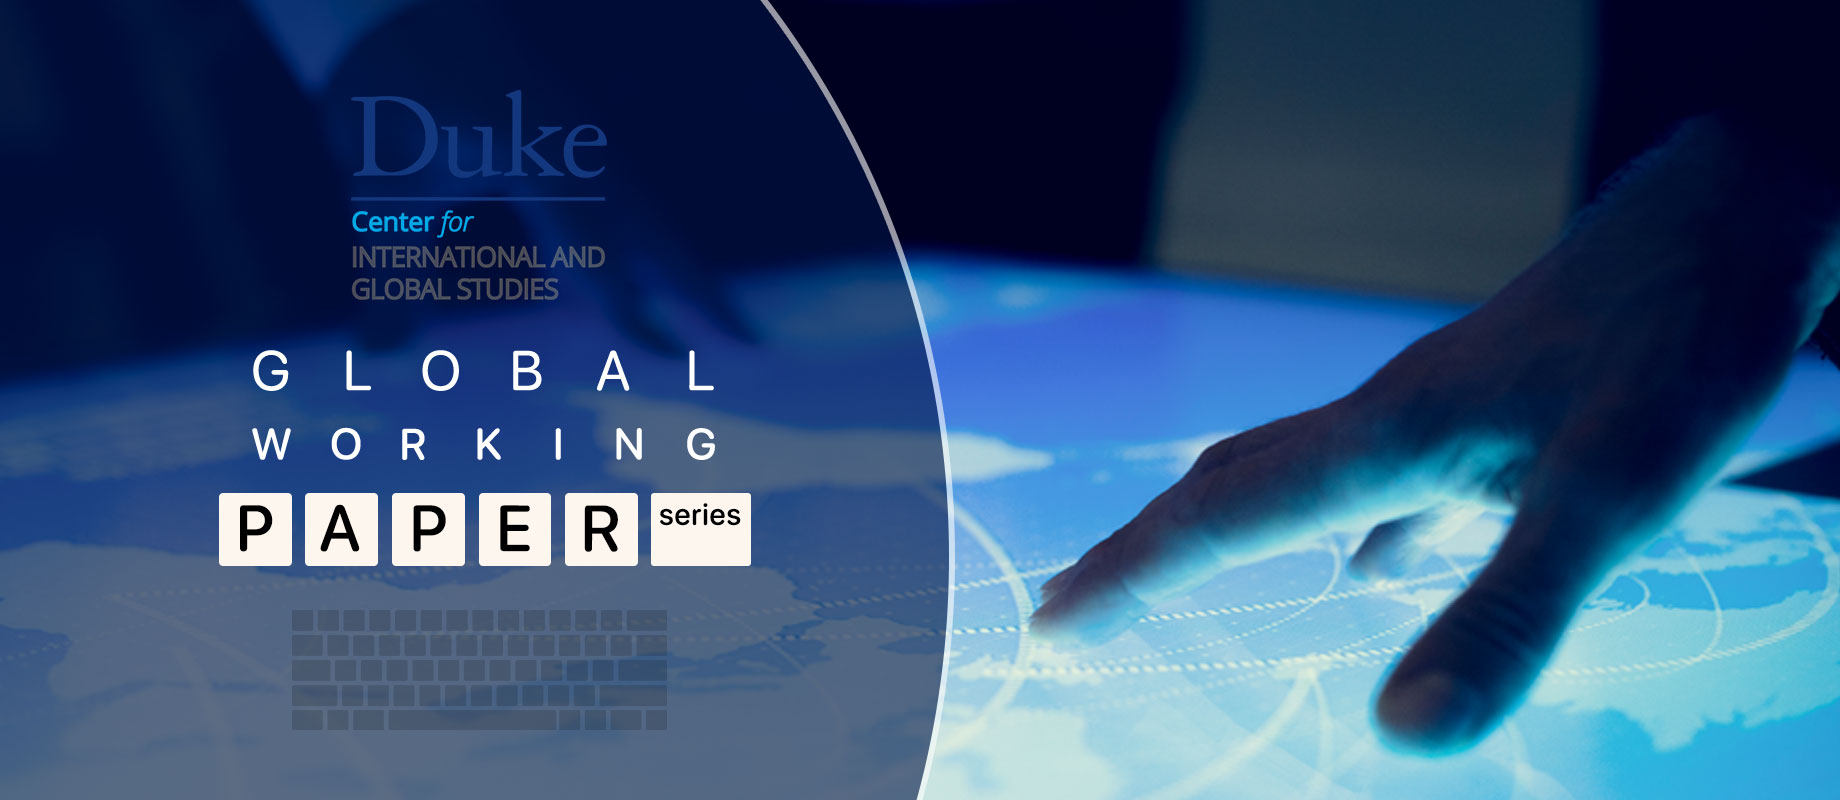 banner image for global working paper series page